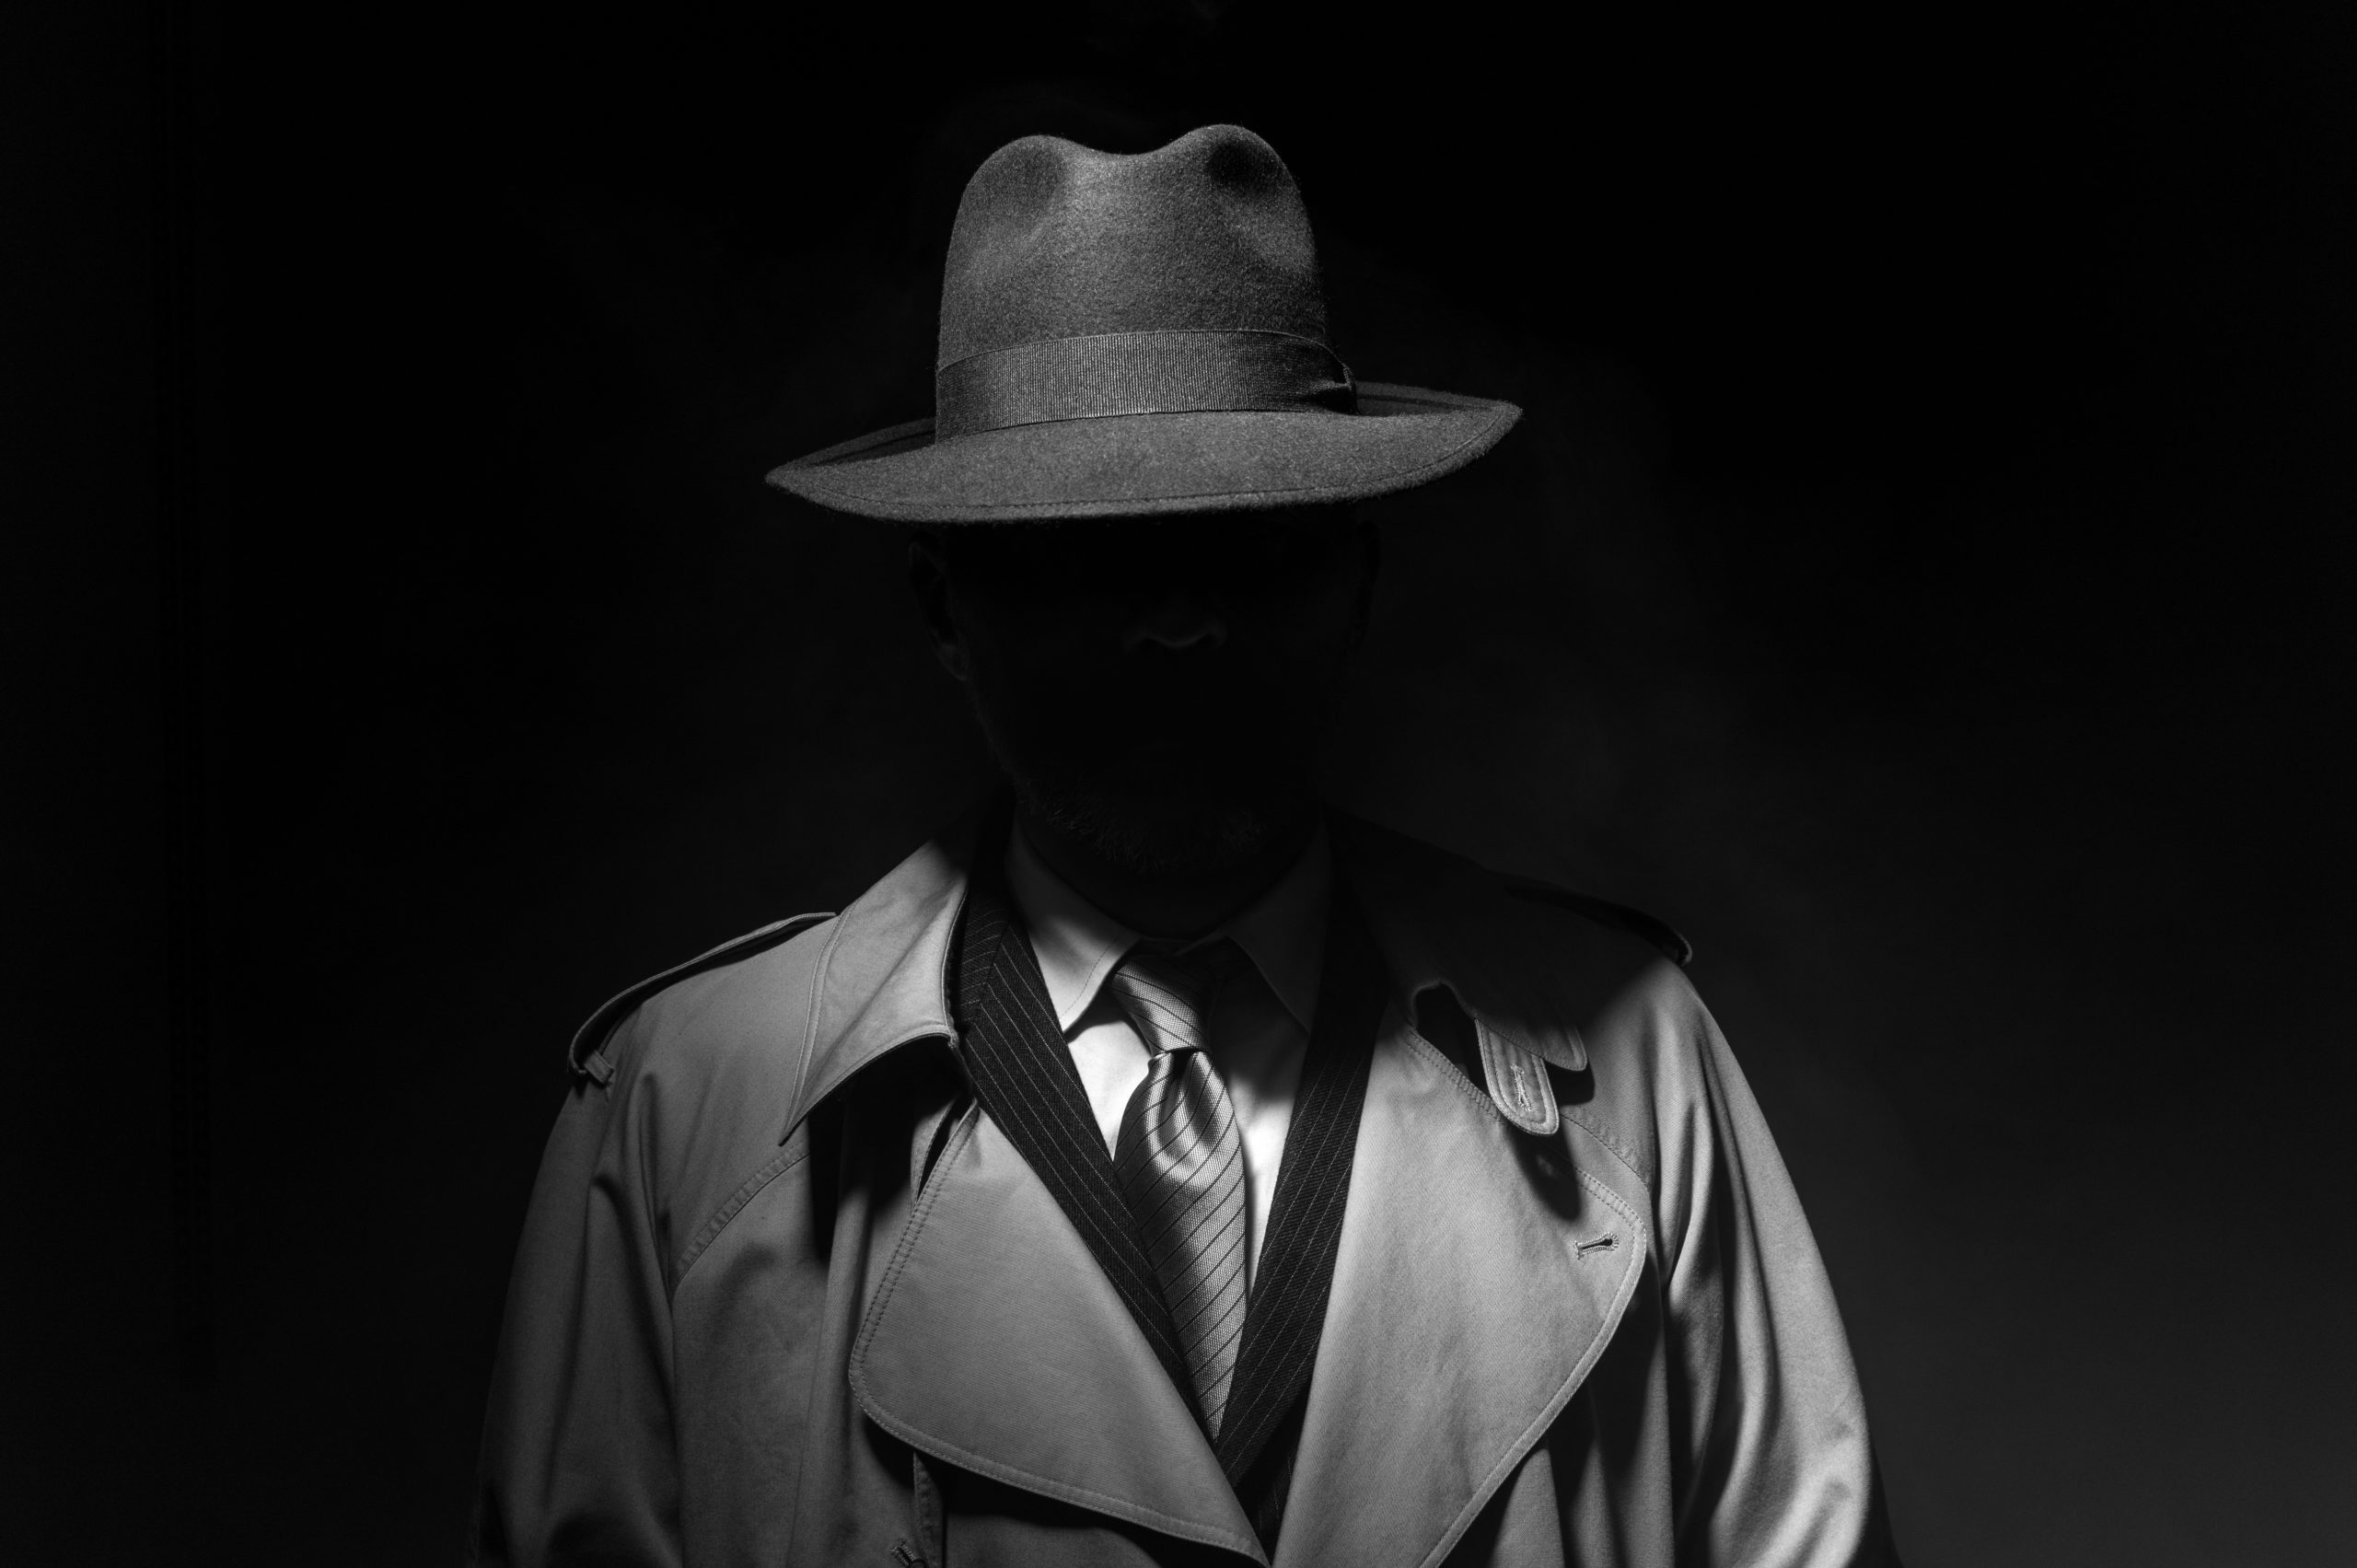 Modern private detective series